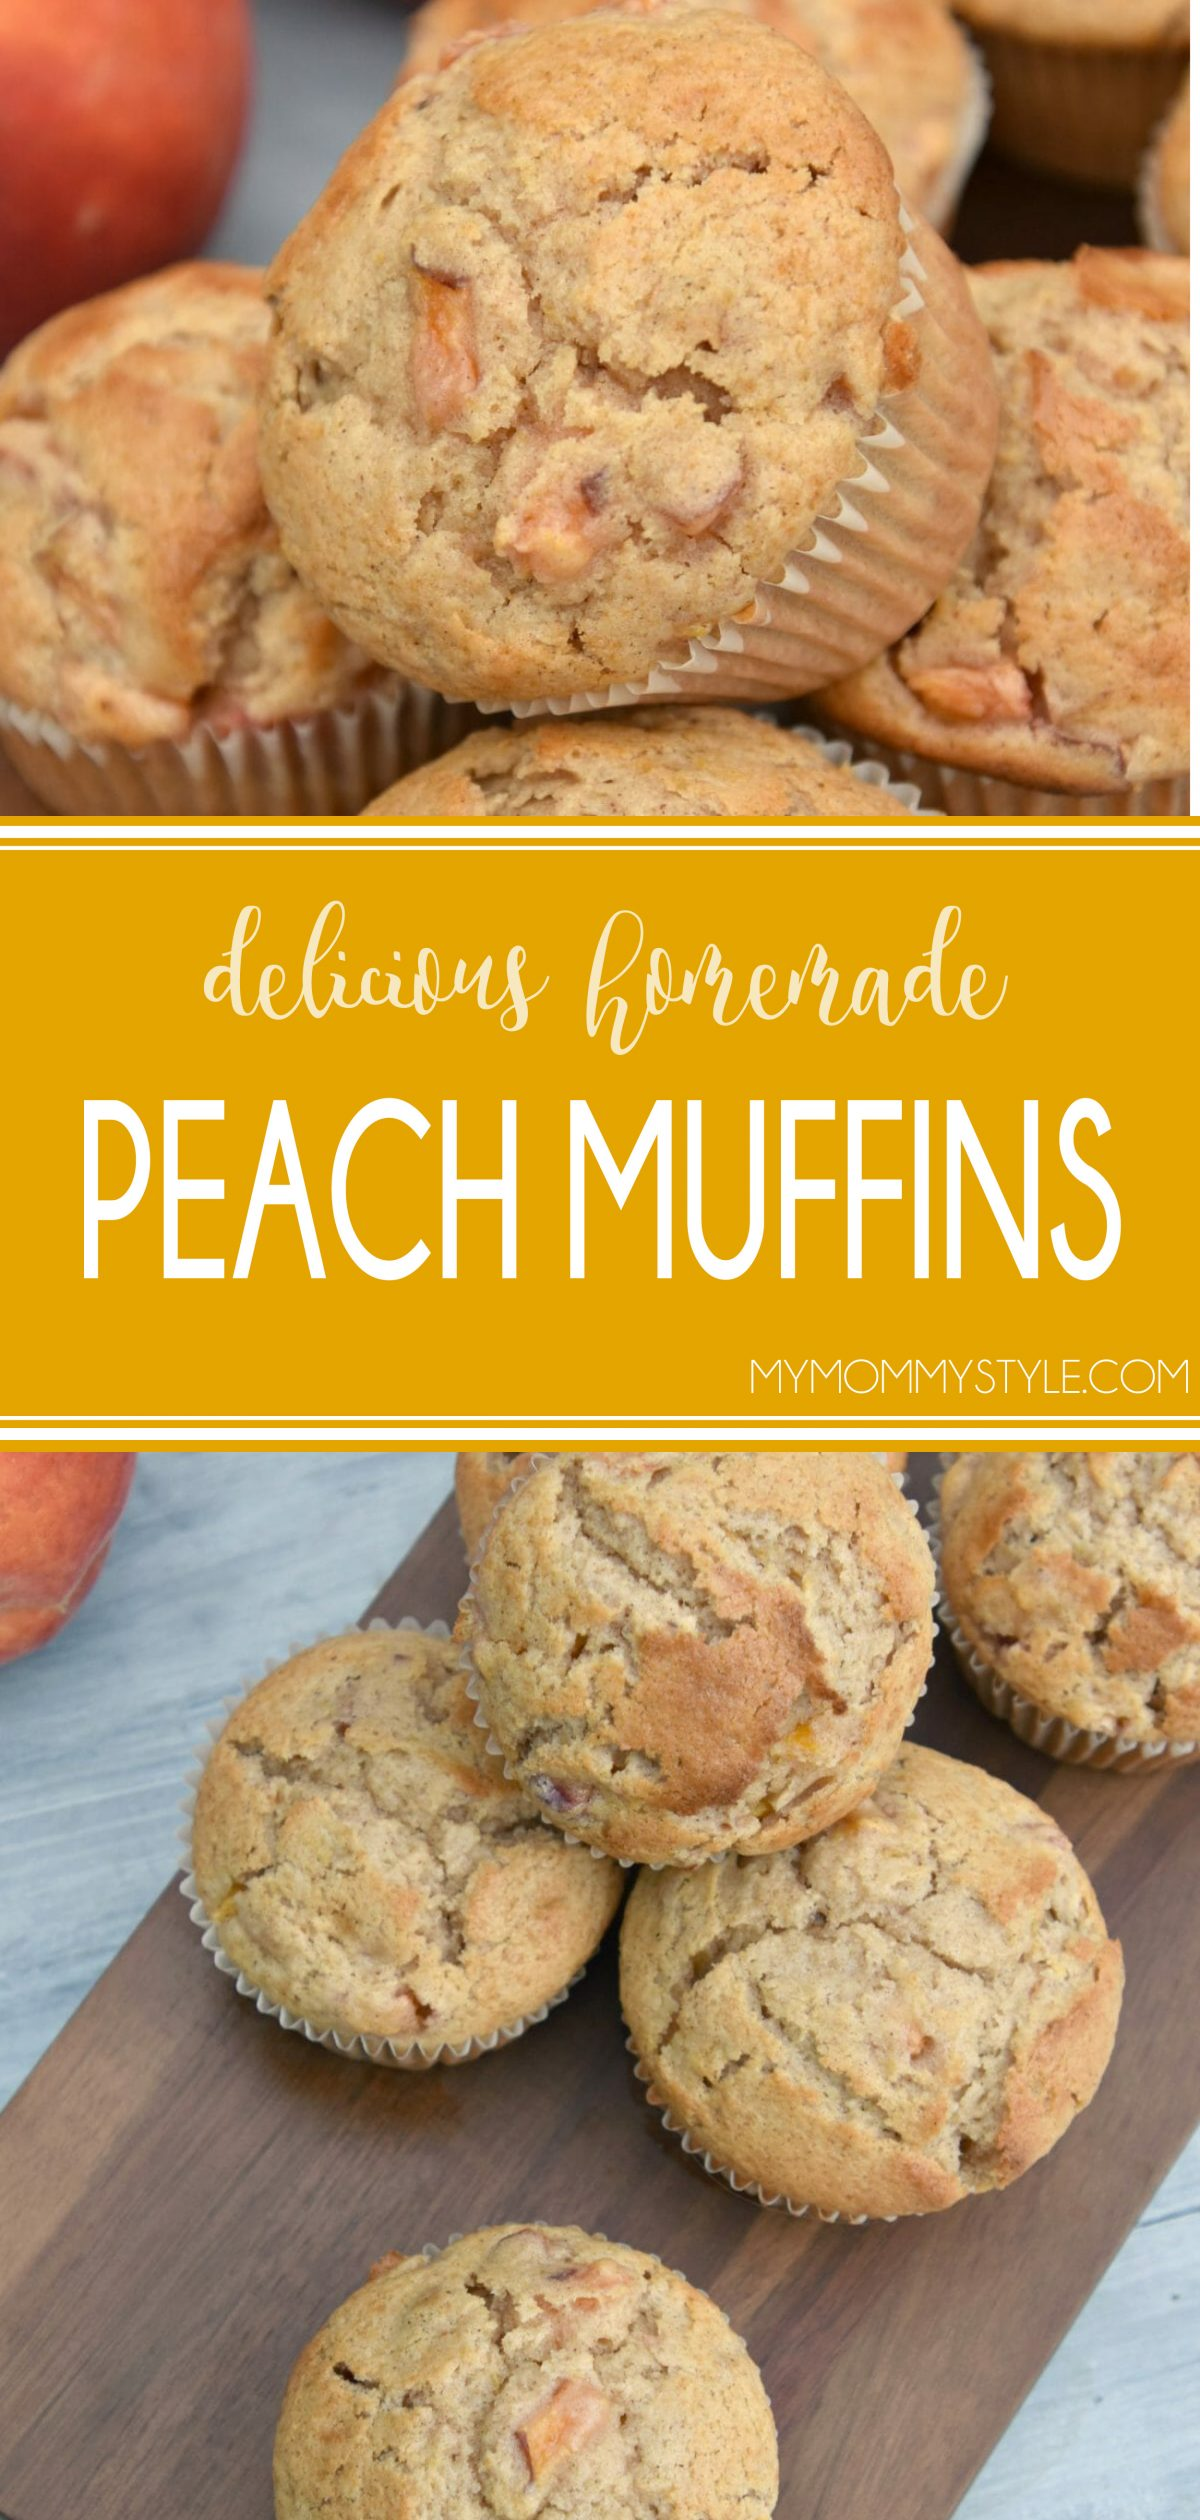 These peach muffins are perfectly soft and moist and bursting with flavor. Made with fresh peaches or nectarines and a splash of vanilla and spices. These are perfection! via @mymommystyle